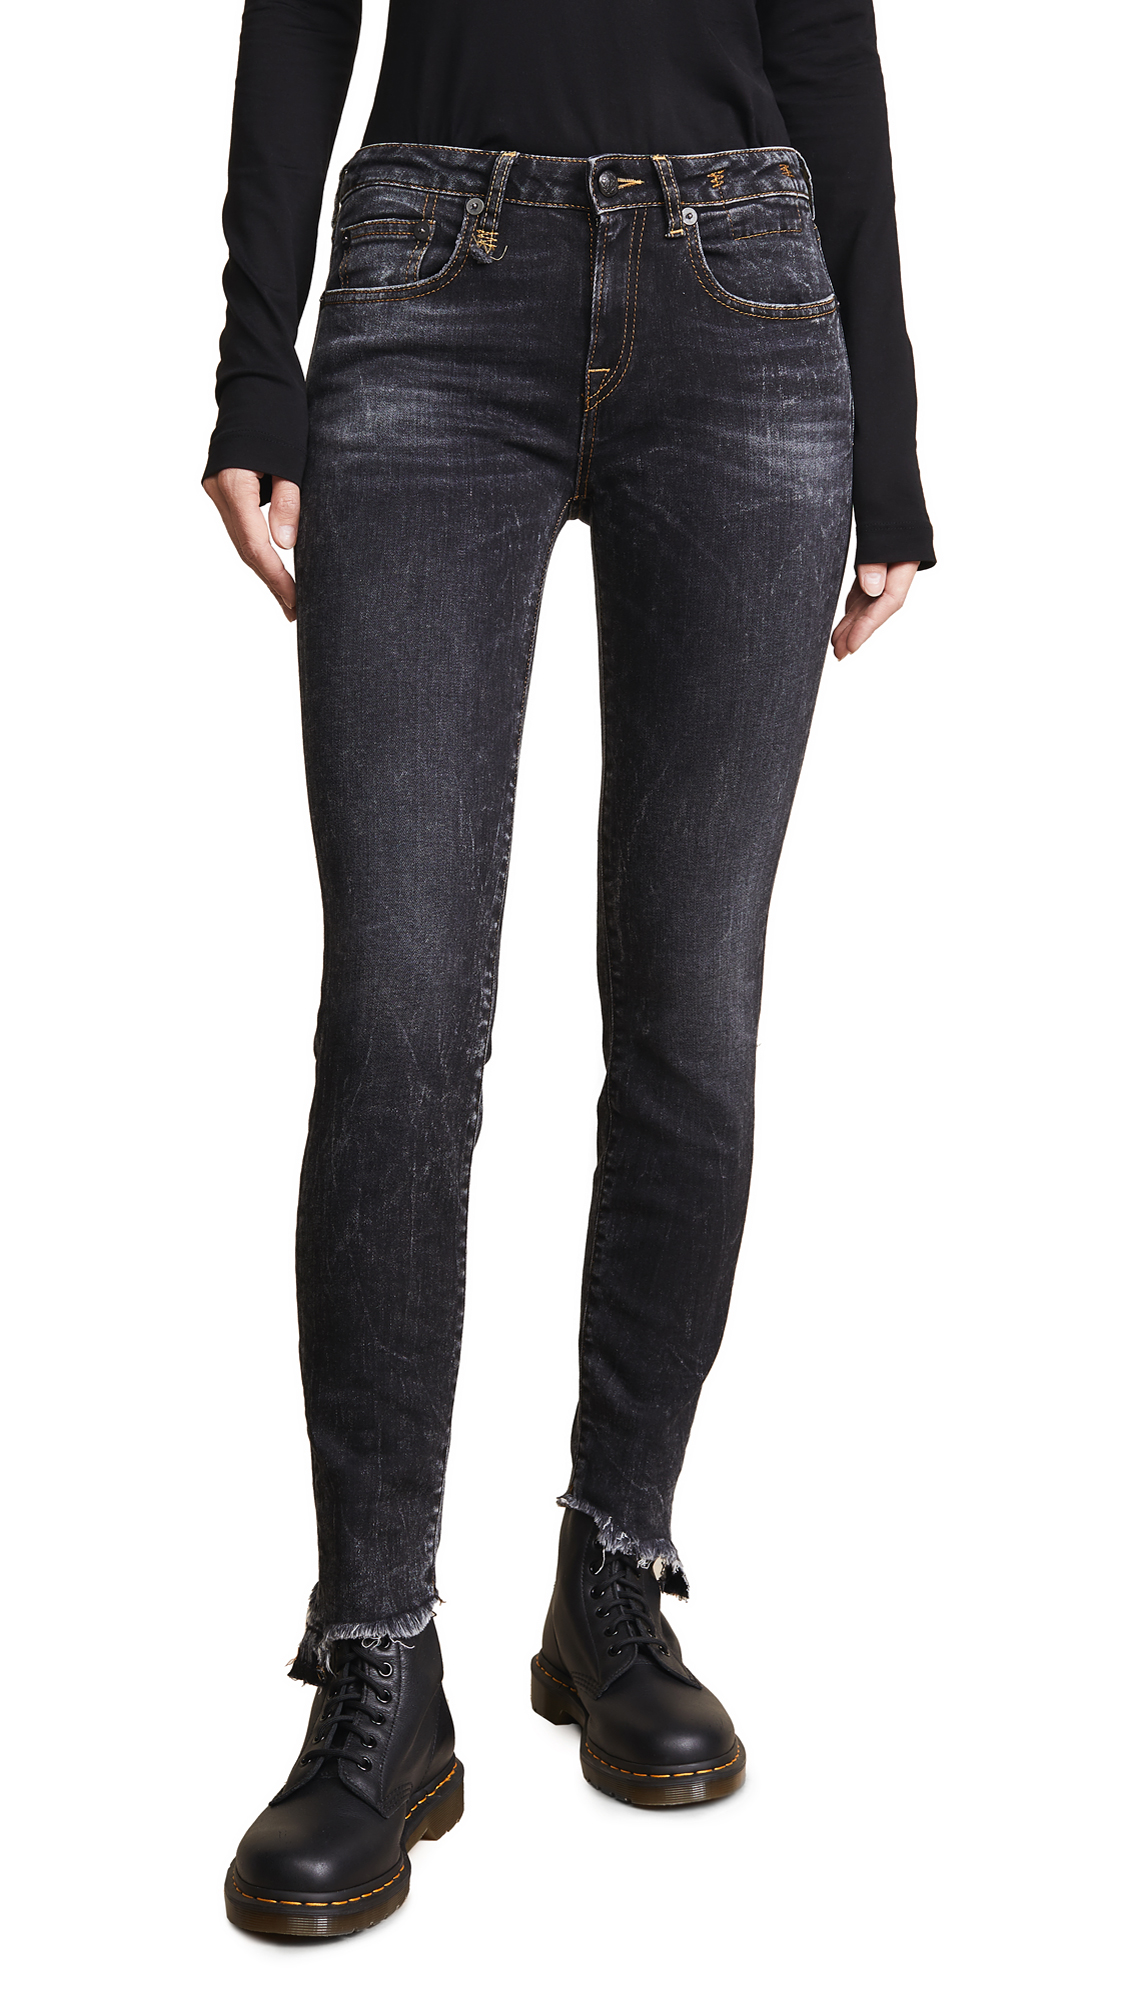 ALISON SKINNY JEANS WITH UNEVEN HEM